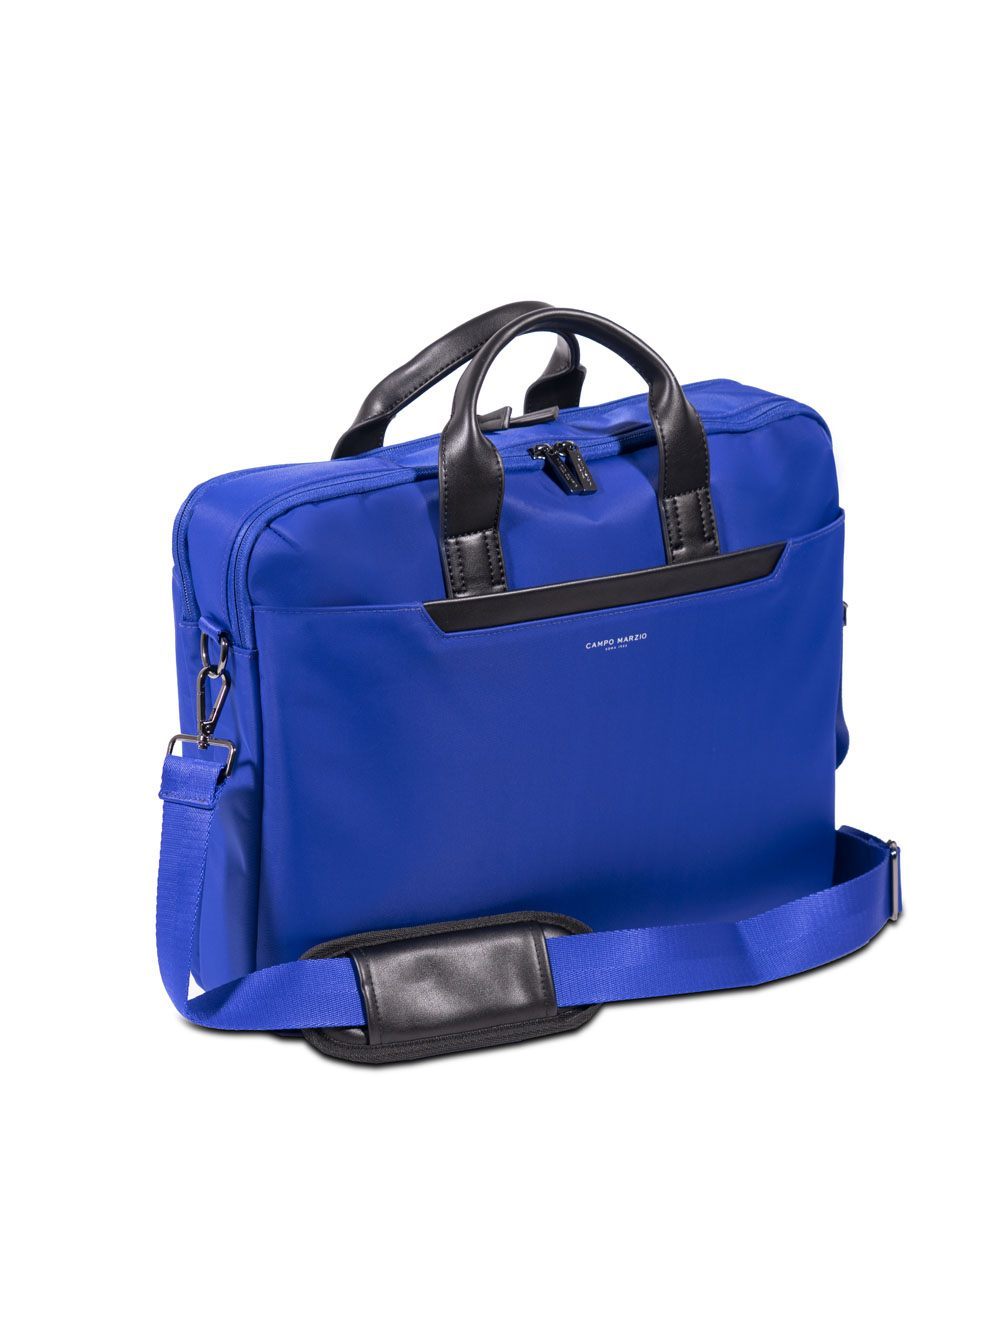 "Porta Laptop 15,6"" - Blu Mirtillo"